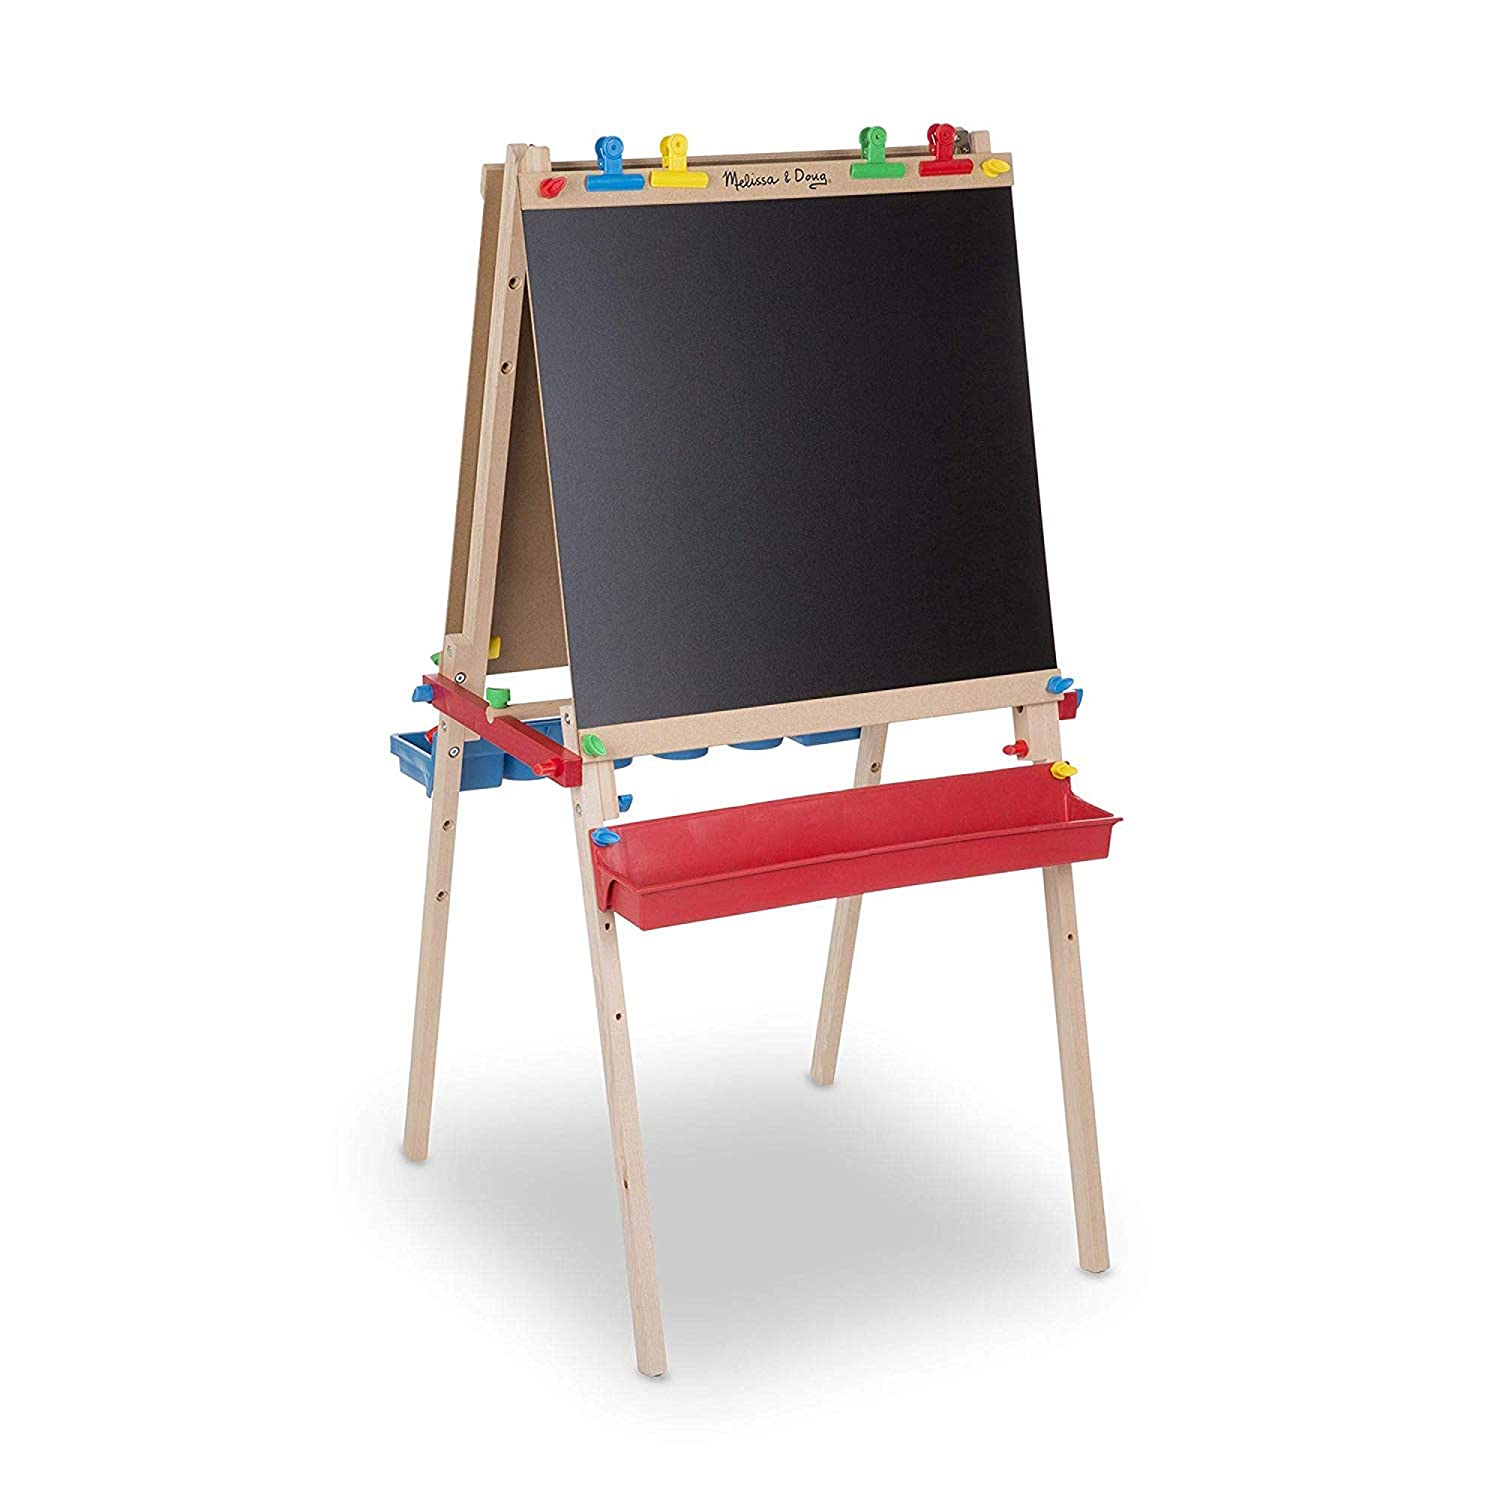 """Melissa & Doug Deluxe Wooden Standing Art Easel (Arts & Crafts, Easy to Assemble, 47"""" H x 27"""" W x 26"""" L Assembled, Great Gift for Girls and Boys - Best for 3, 4, 5 Year Olds and Up)"""